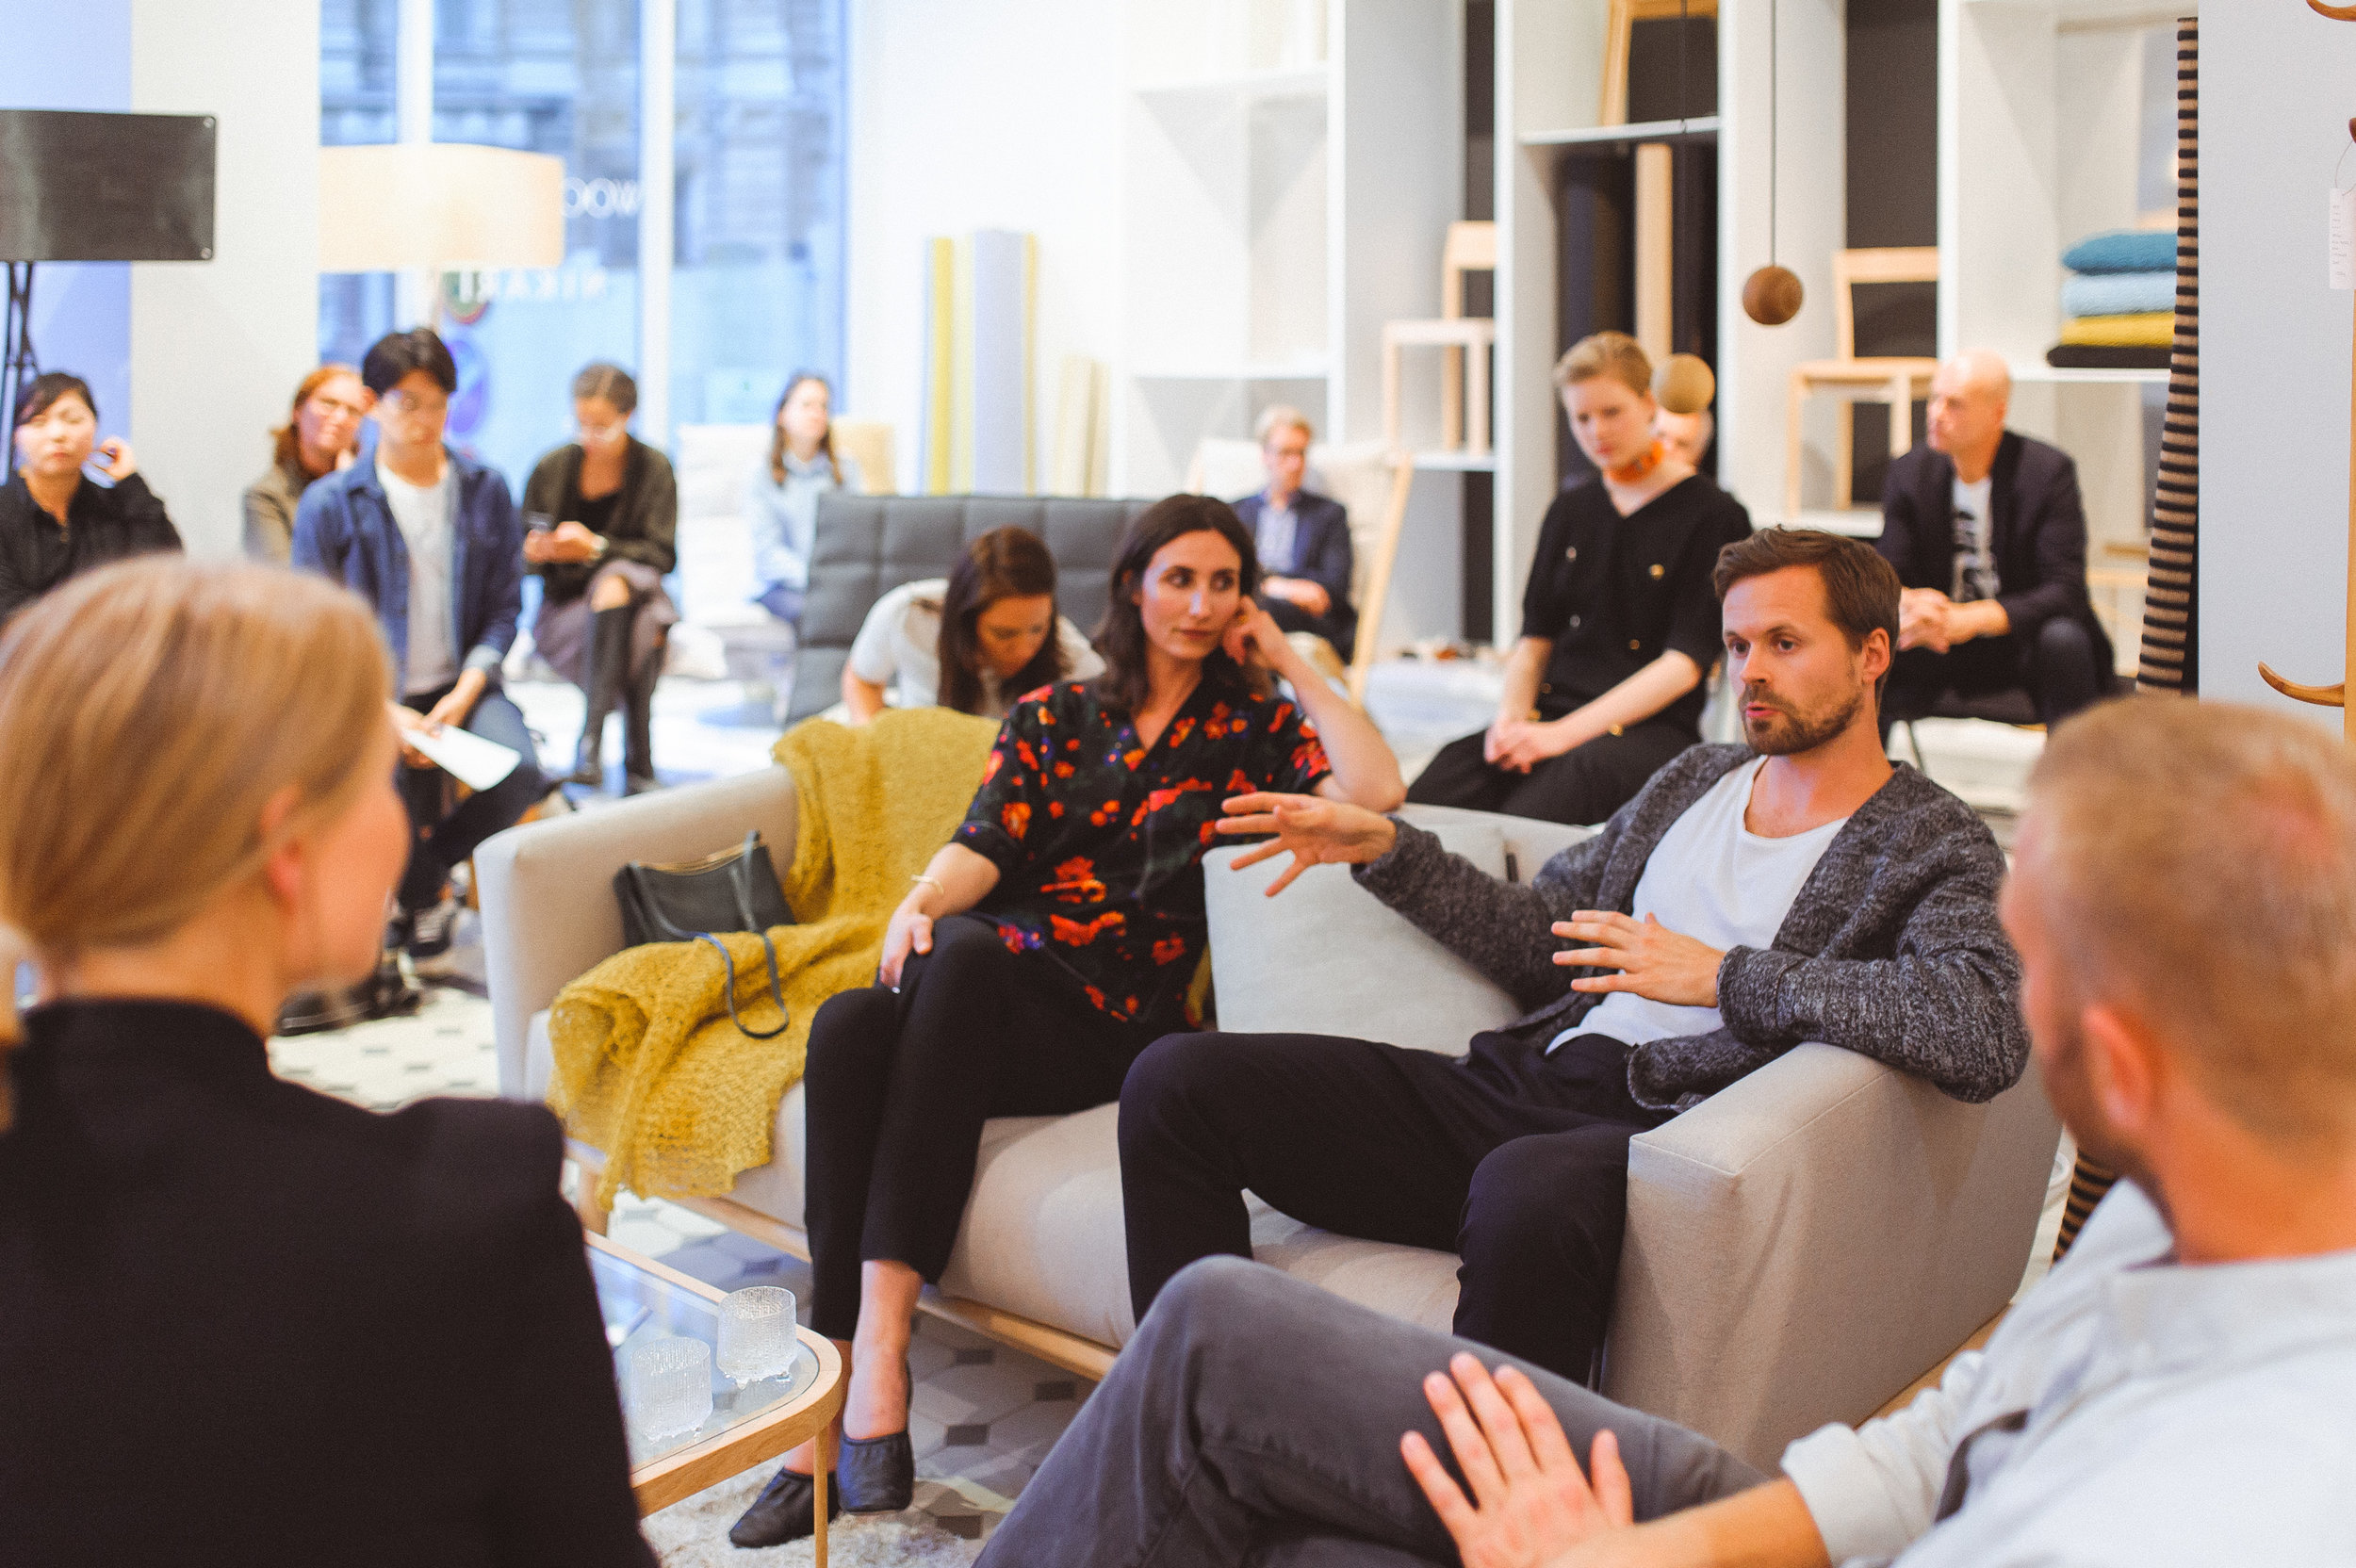 An Evening with Design Art  salon discussion was organized as part of the Helsinki Design Week in 2016 by Cooper Hewitt Smithsonian Design Museum's MOBIUS Fellow and Design Museum Helsinki's Curator Suvi Saloniemi, who worked in New York City via the MOBIUS Fellowship Program in late 2014.